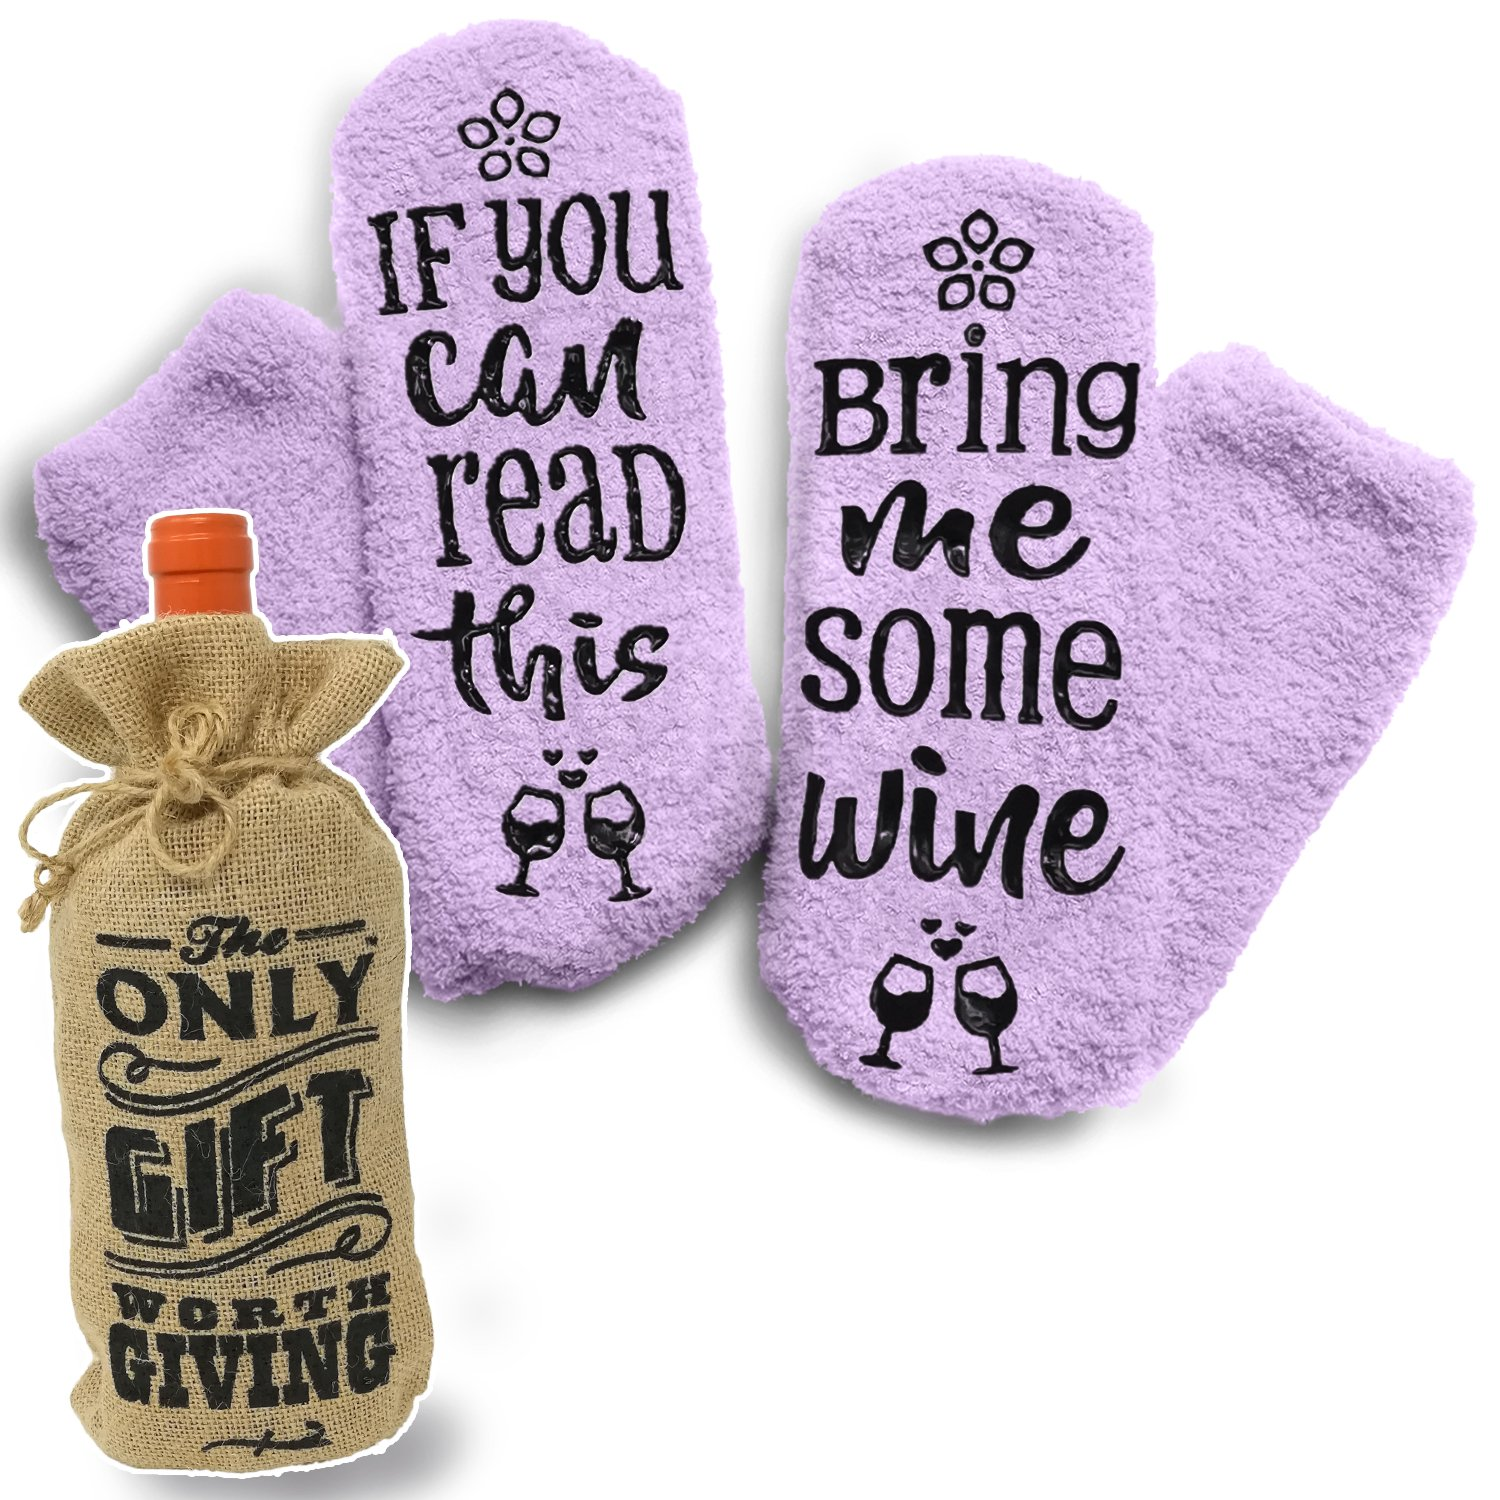 Fuzzy Bring Me Wine Socks - Funny Socks + Wine Bottle Gift Jute Bag. Perfect Wine Accessories and House Warming Gift under $25 Dollars LVAP Group